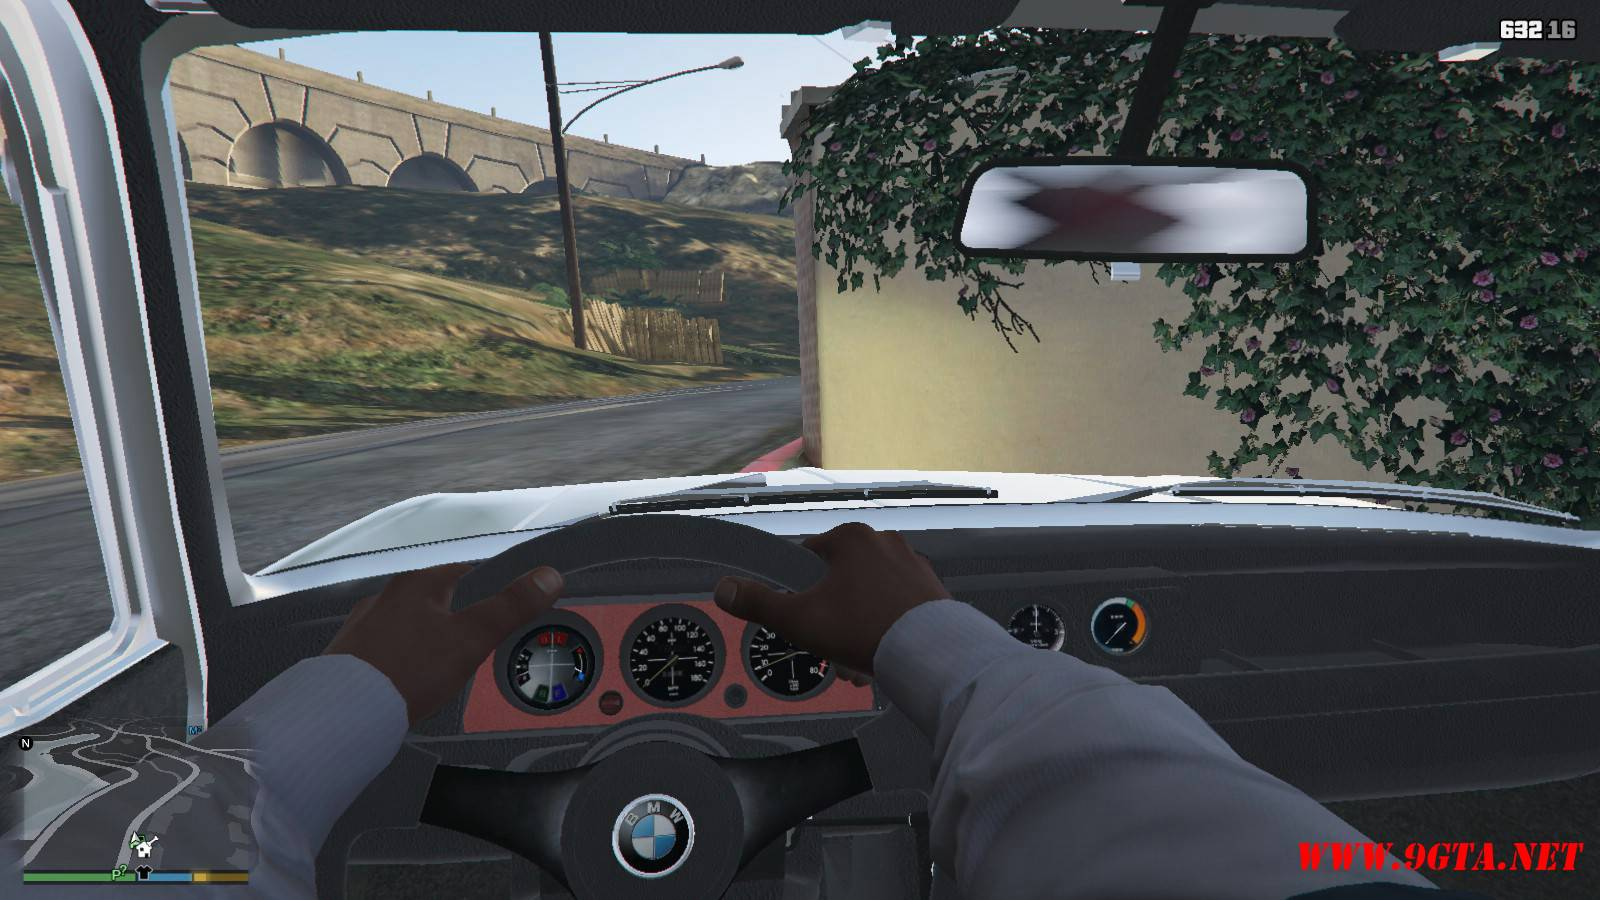 2002 BMW Turbo Mod For GTA5 (13)